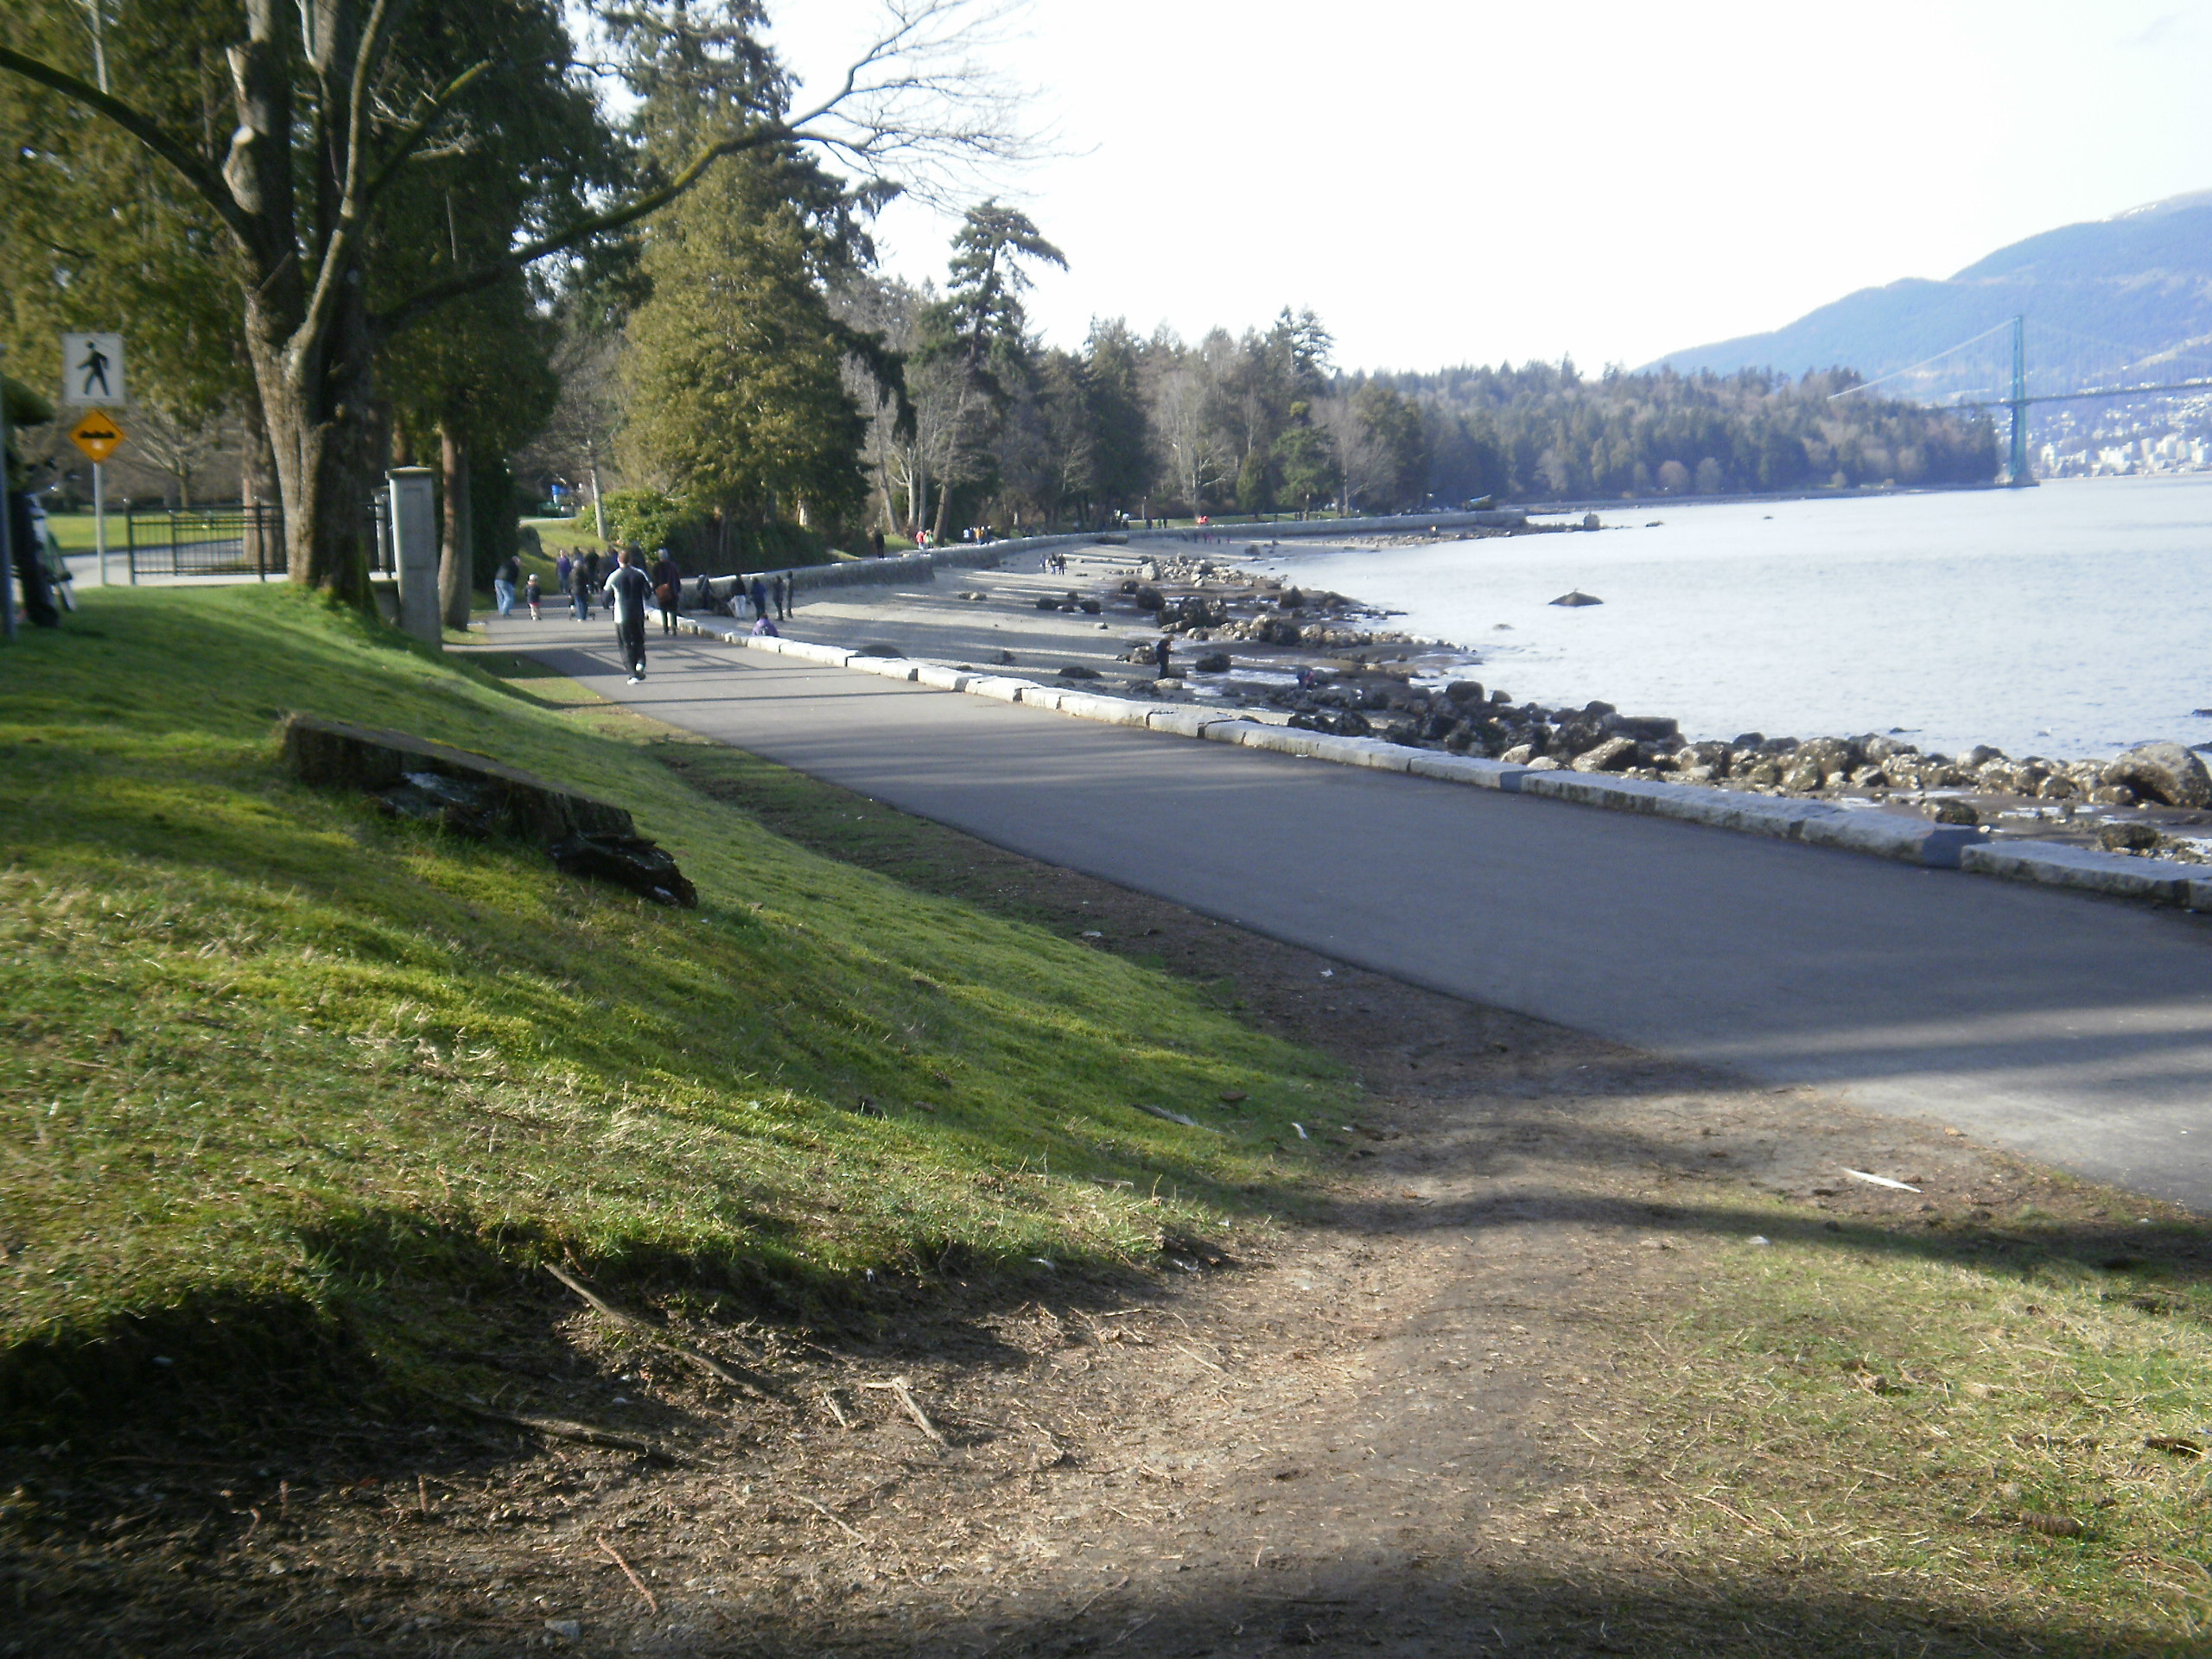 stanley park project After the windstorm of 2006 that devastated stanley park, the vancouver board of parks and recreation commissioned four groups of artists to conceive and con.